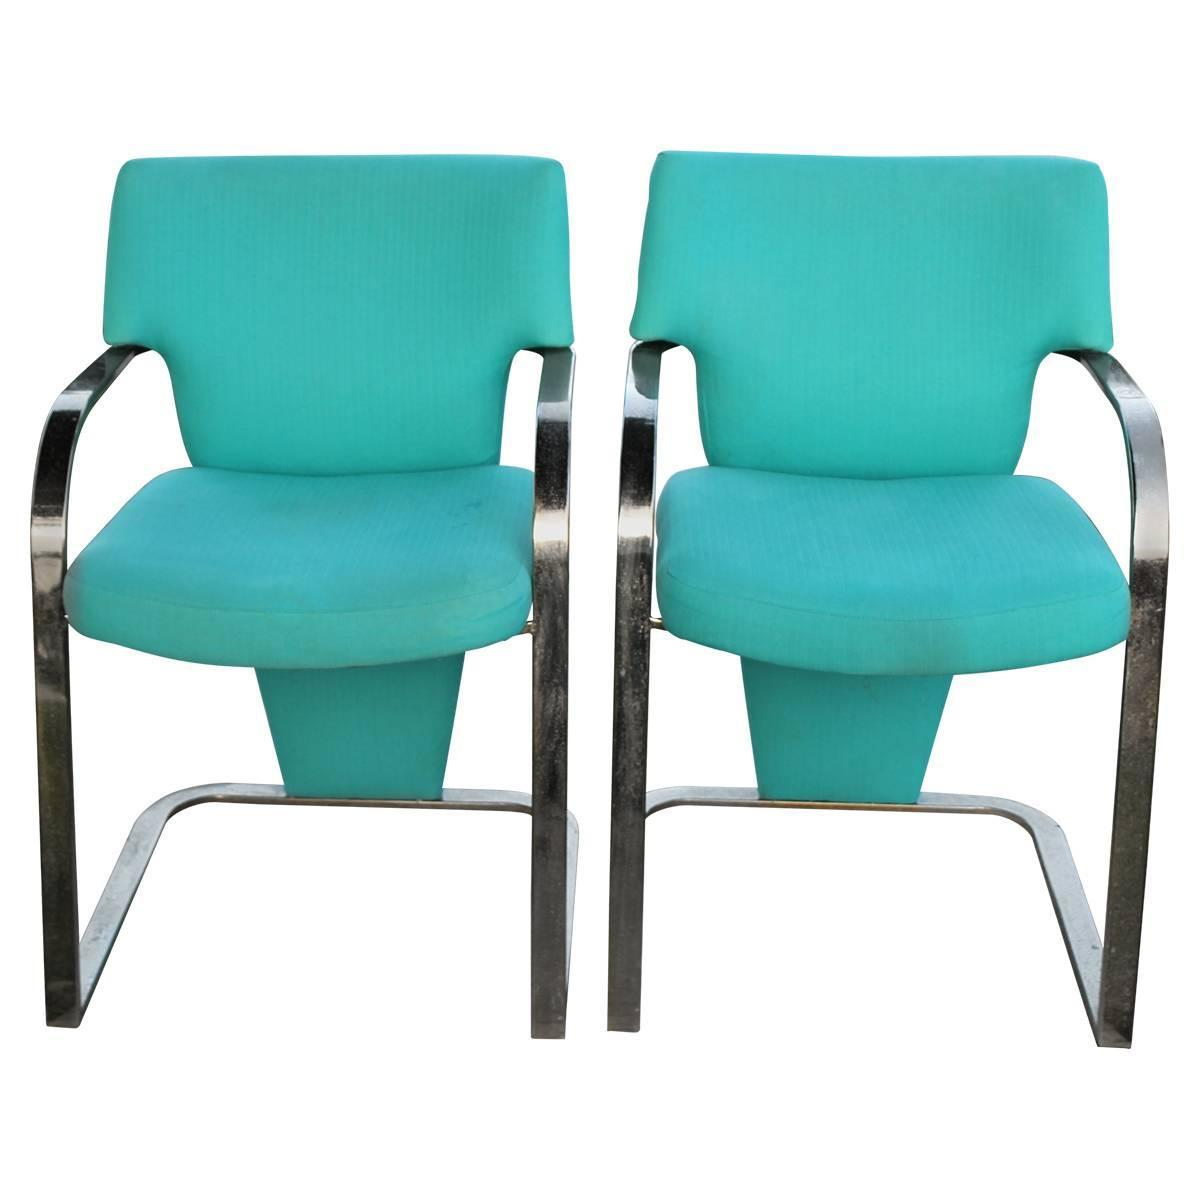 Br Carsons Vintage Pair Of Arm Cantilever Chairs Art Deco Hollywood Regency For At 1stdibs